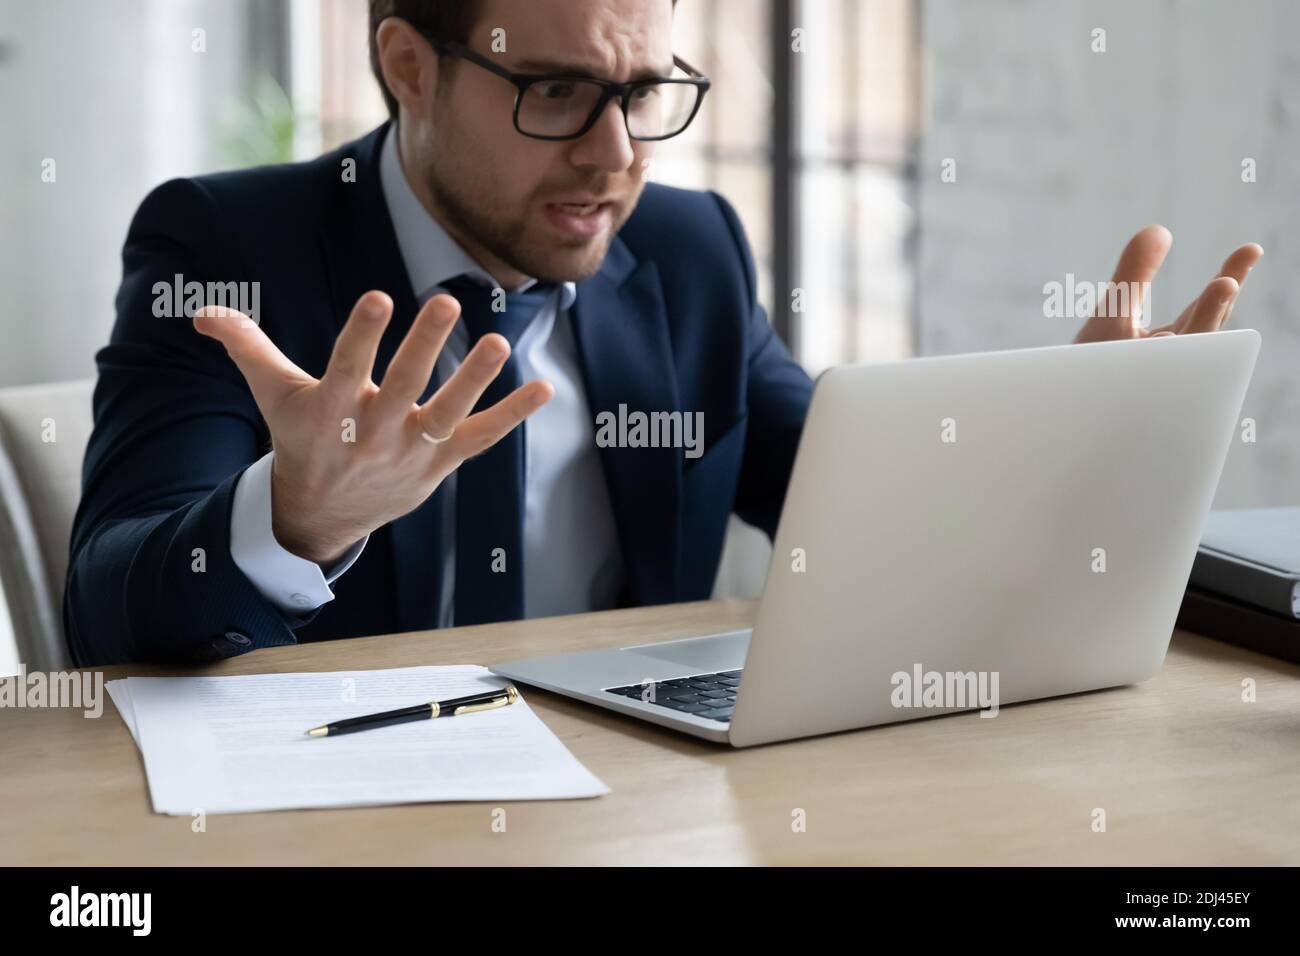 Close up annoyed businessman wearing glasses looking at laptop screen Stock Photo